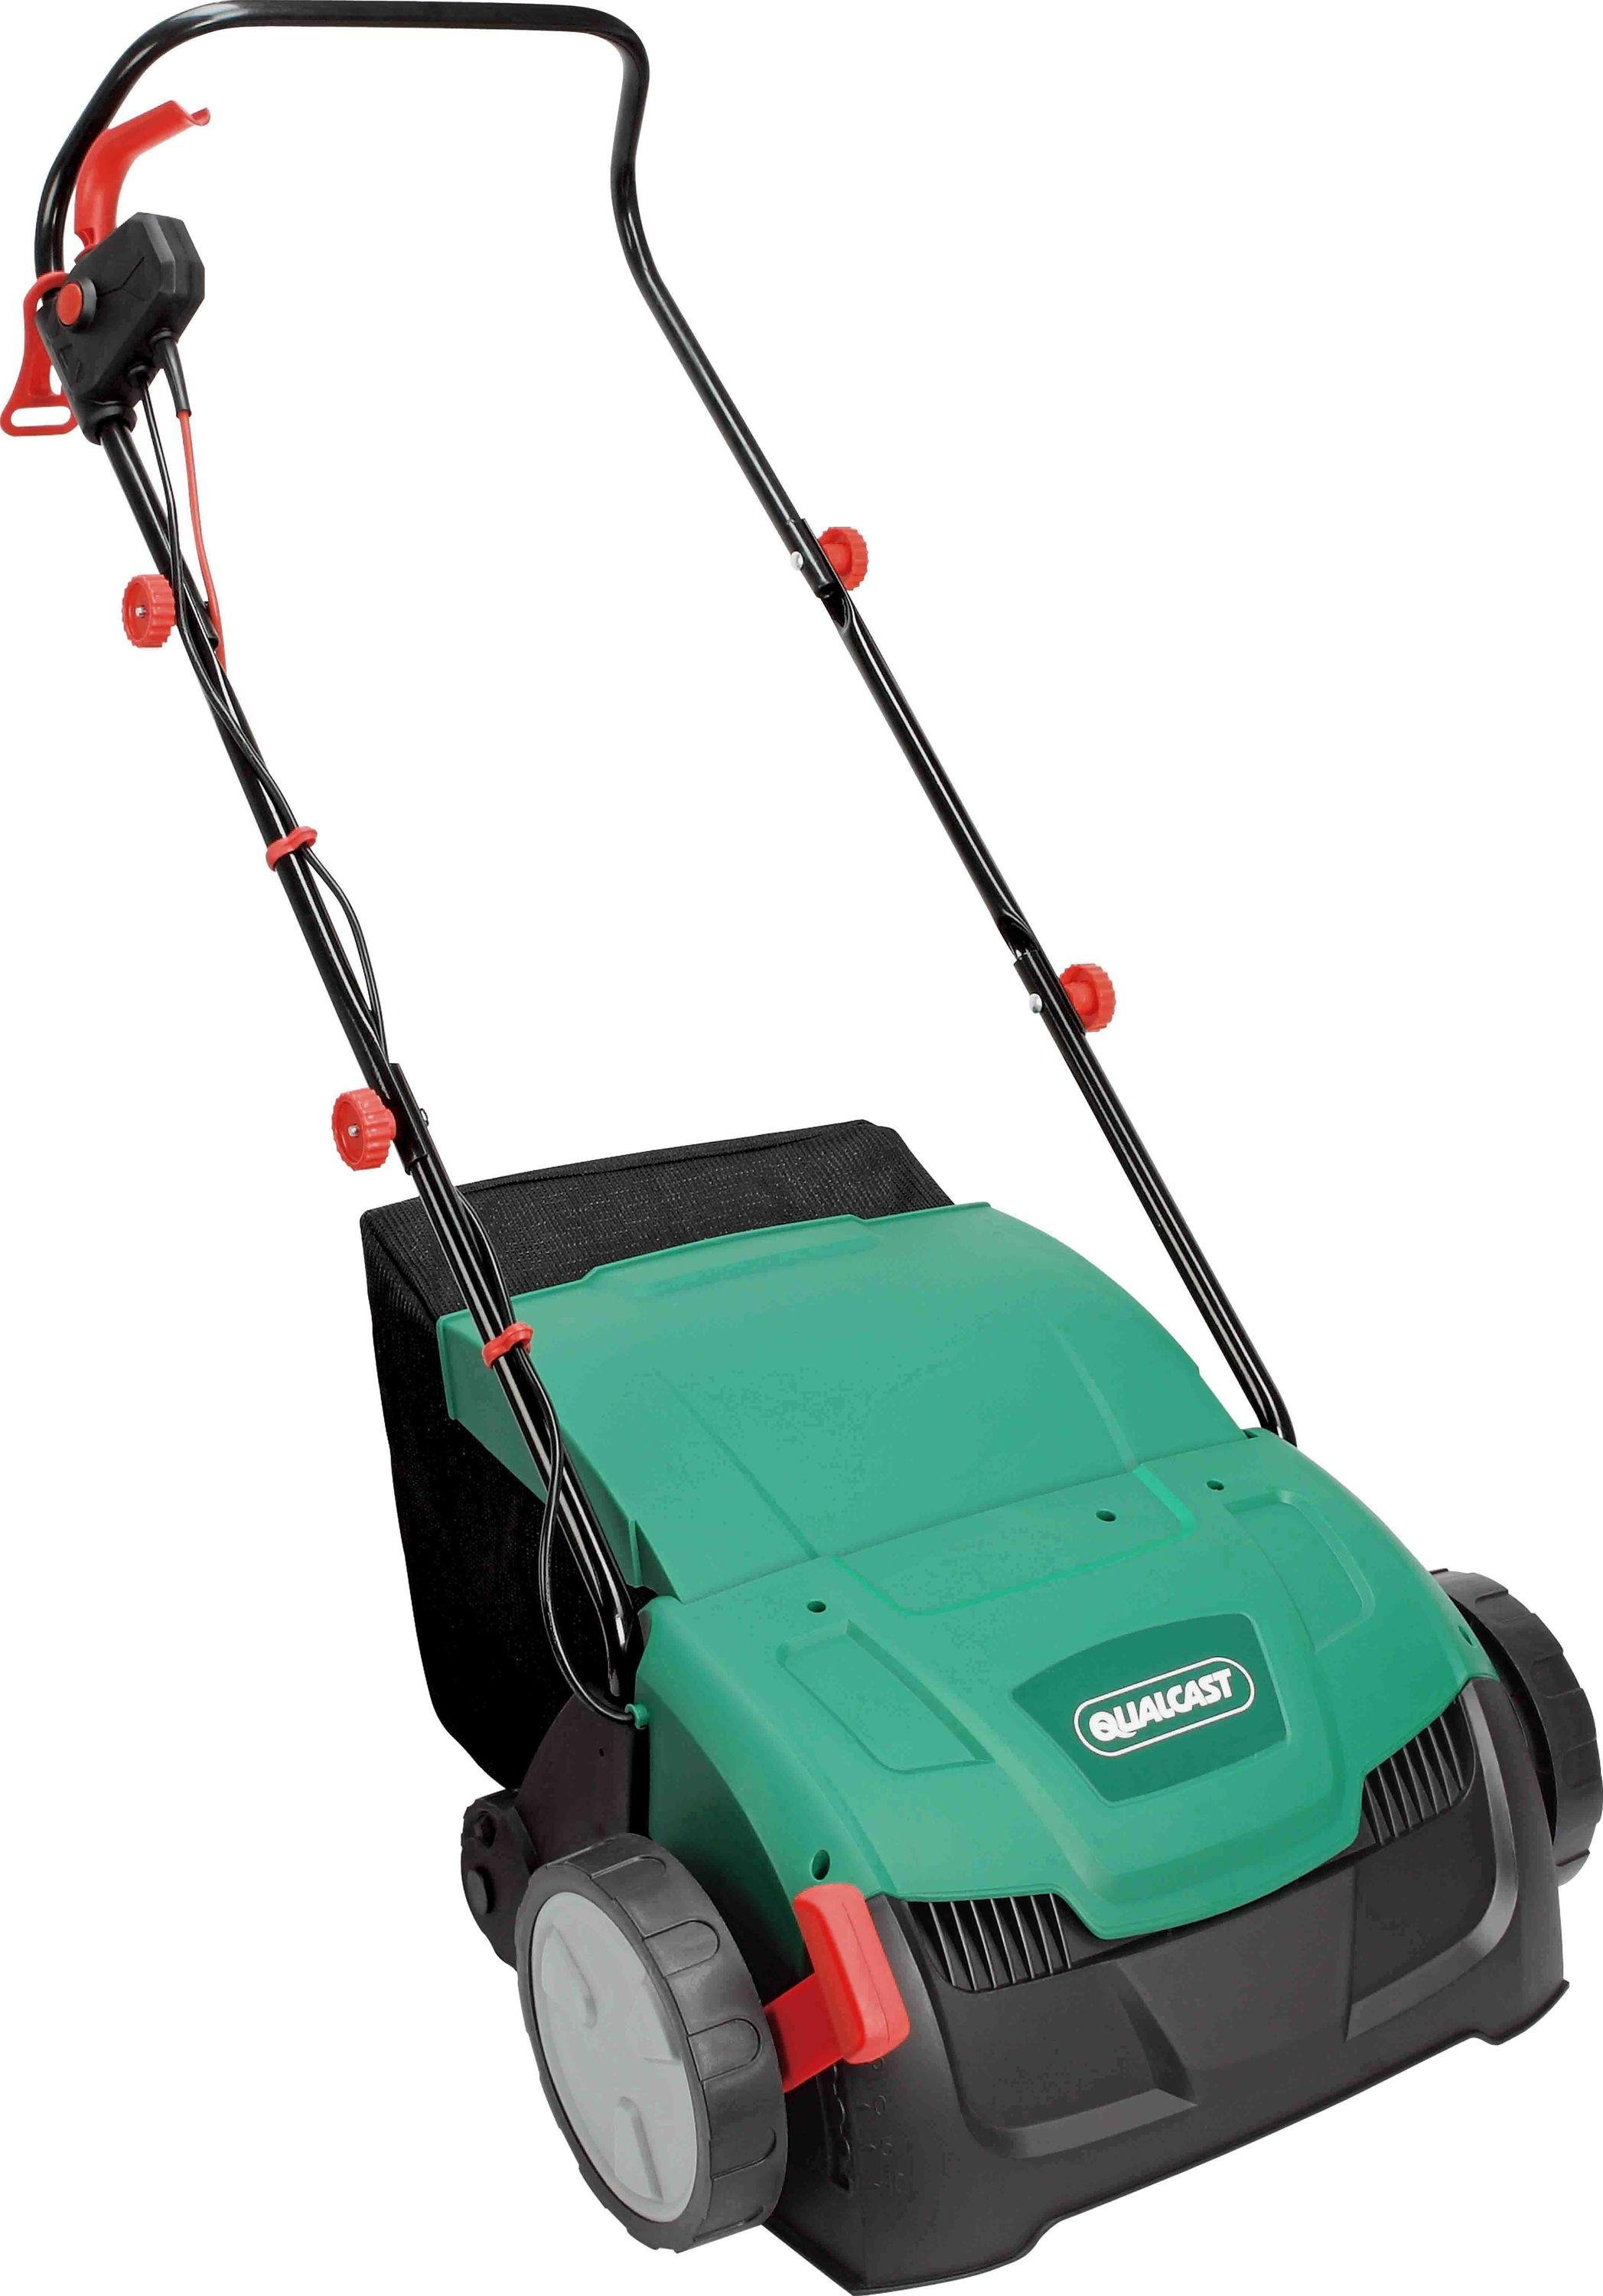 Qualcast Yt6702 Lawn Raker And Scarifier 1300w